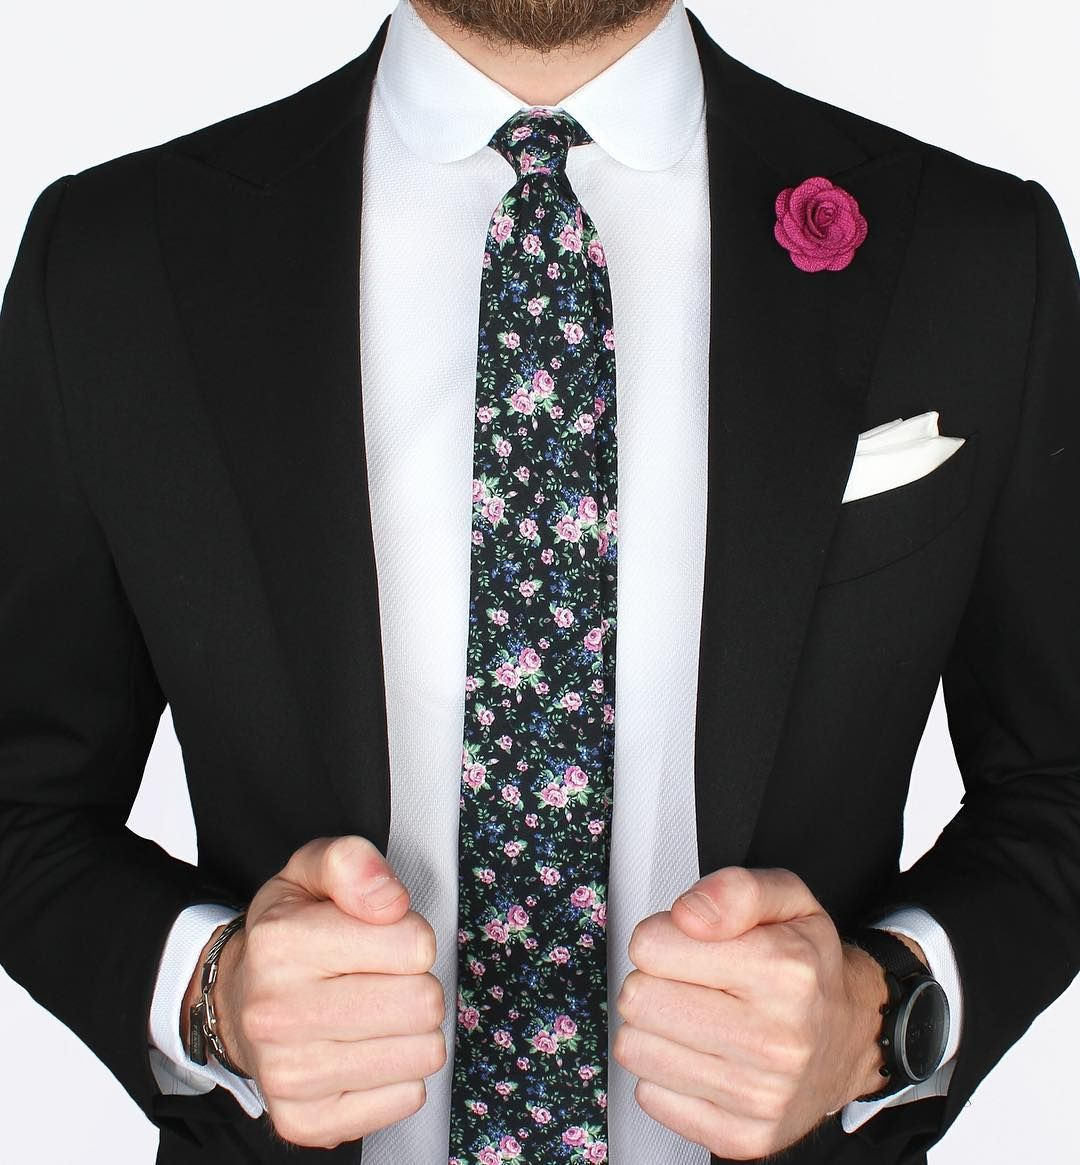 Our Black & pink floral tie over a White French cuff shirt with ...